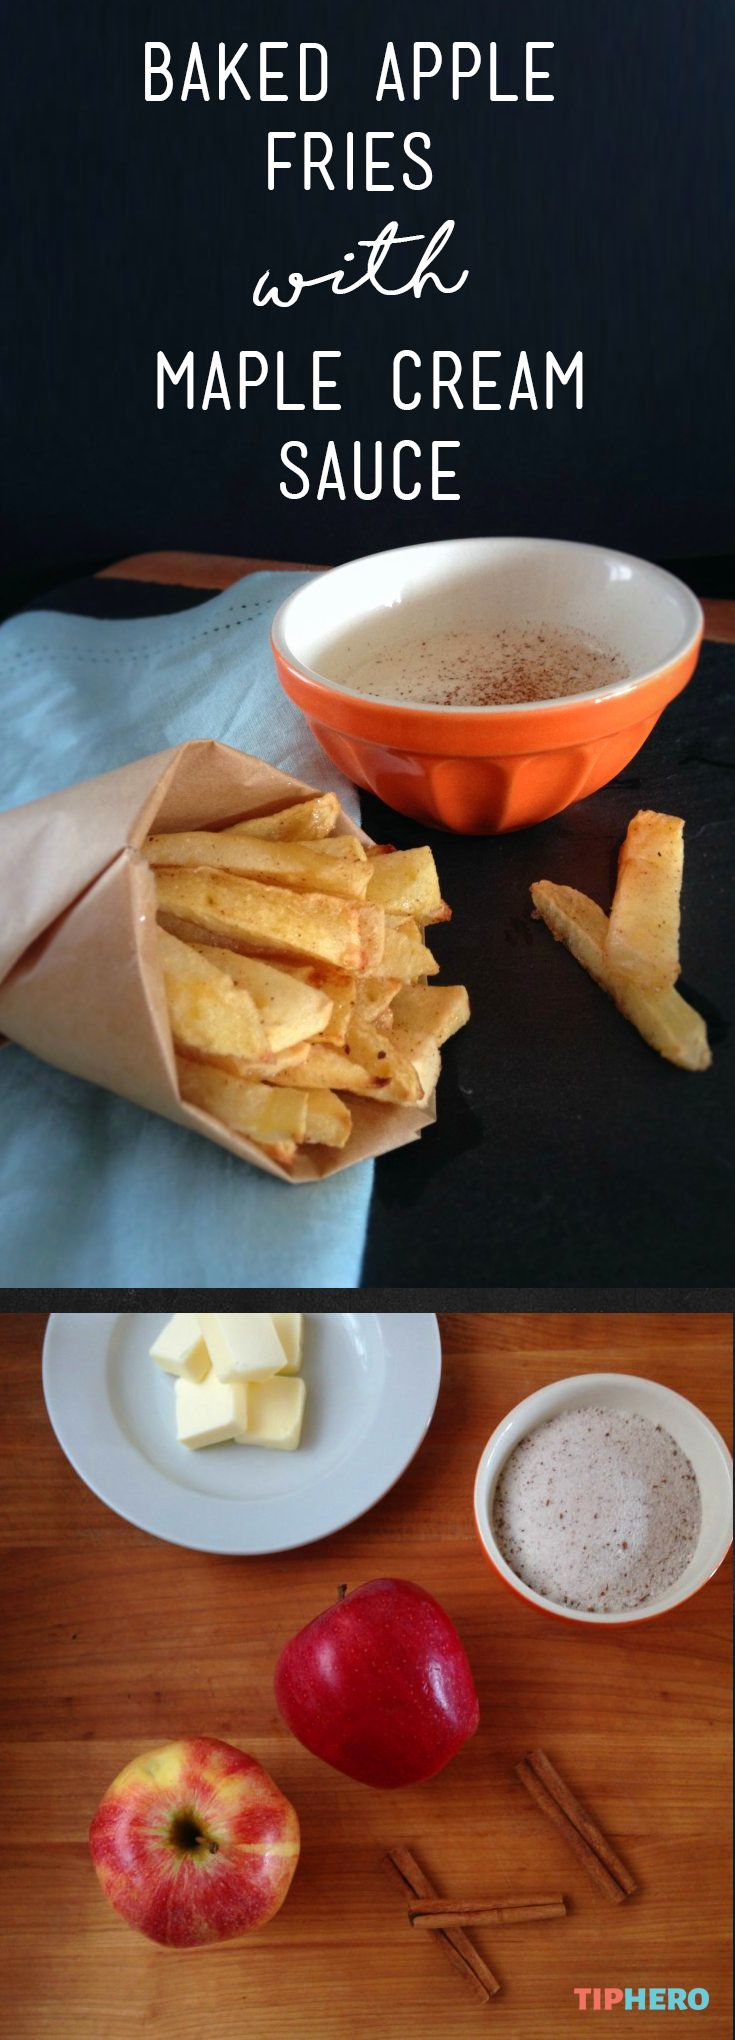 Baked Apple Fries with Maple Cream Sauce | This quick and easy appetizer bakes up in about 15 minutes for a sweet and crispy treat. Add some maple sour cream dipping sauce for some extra sweet! Click for the recipe and how to video.